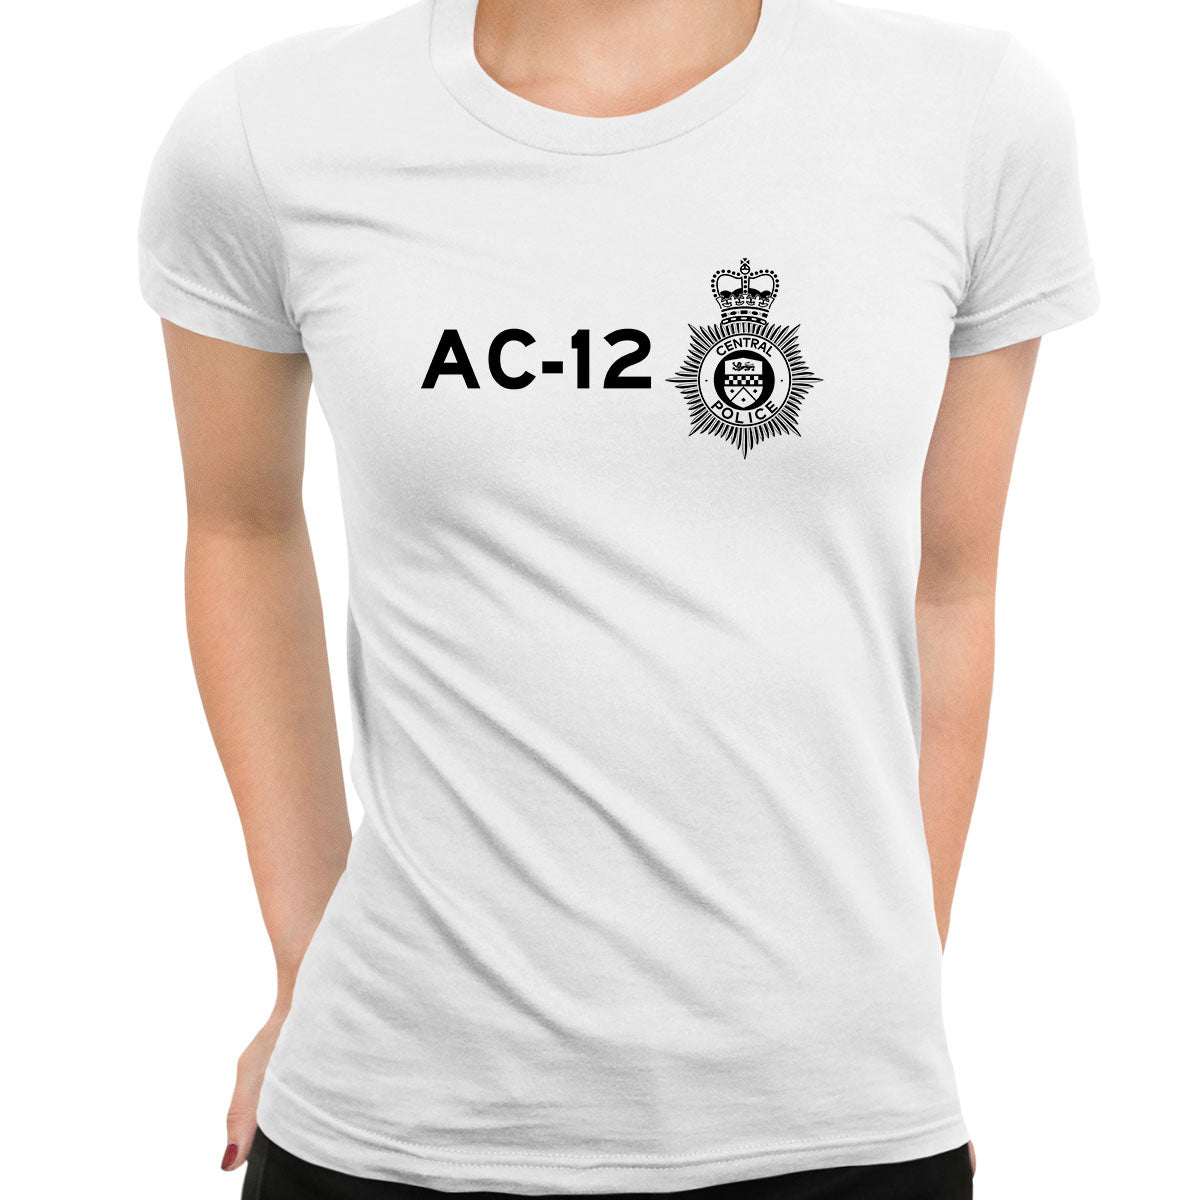 AC-12 Printed BBC TV Series 6 T-Shirt Inspired By Police Logo T-shirt for Women White